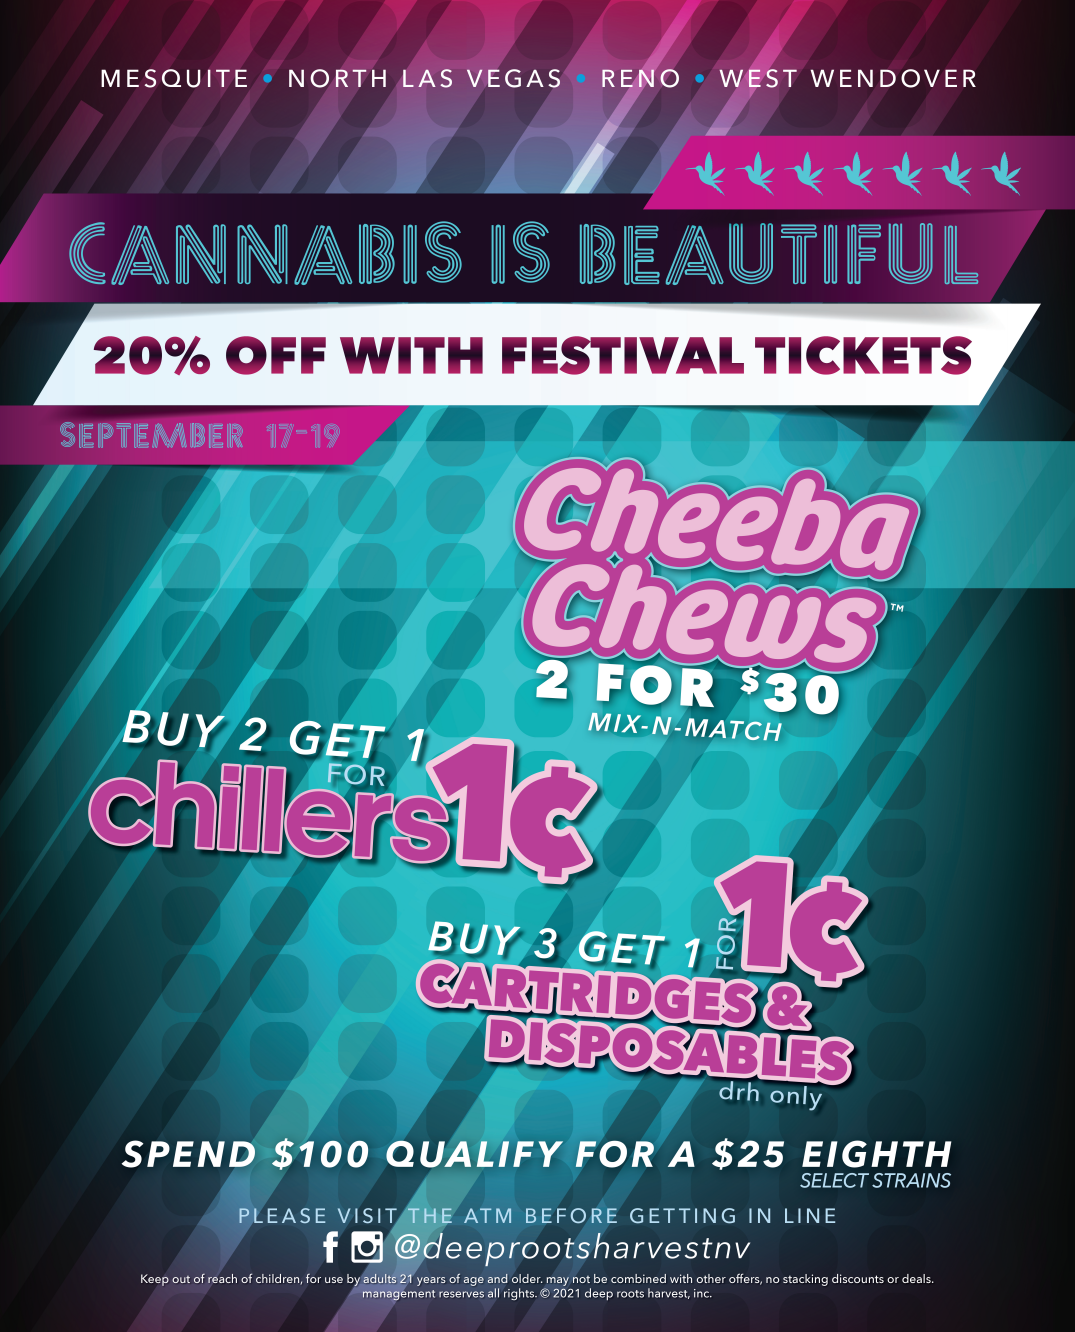 Life is Beautiful Las Vegas, NV. Cannabis is Beautiful. DEALS. 20% off with festival tickets. 2 for $30 Cheeba Chews. Buy 2 get 1 for a penny Chillers. Buy 3 get the 4th for a penny on Deep Roots cartridges and disposables. Spend $100 get a $25 eighth of select flower.